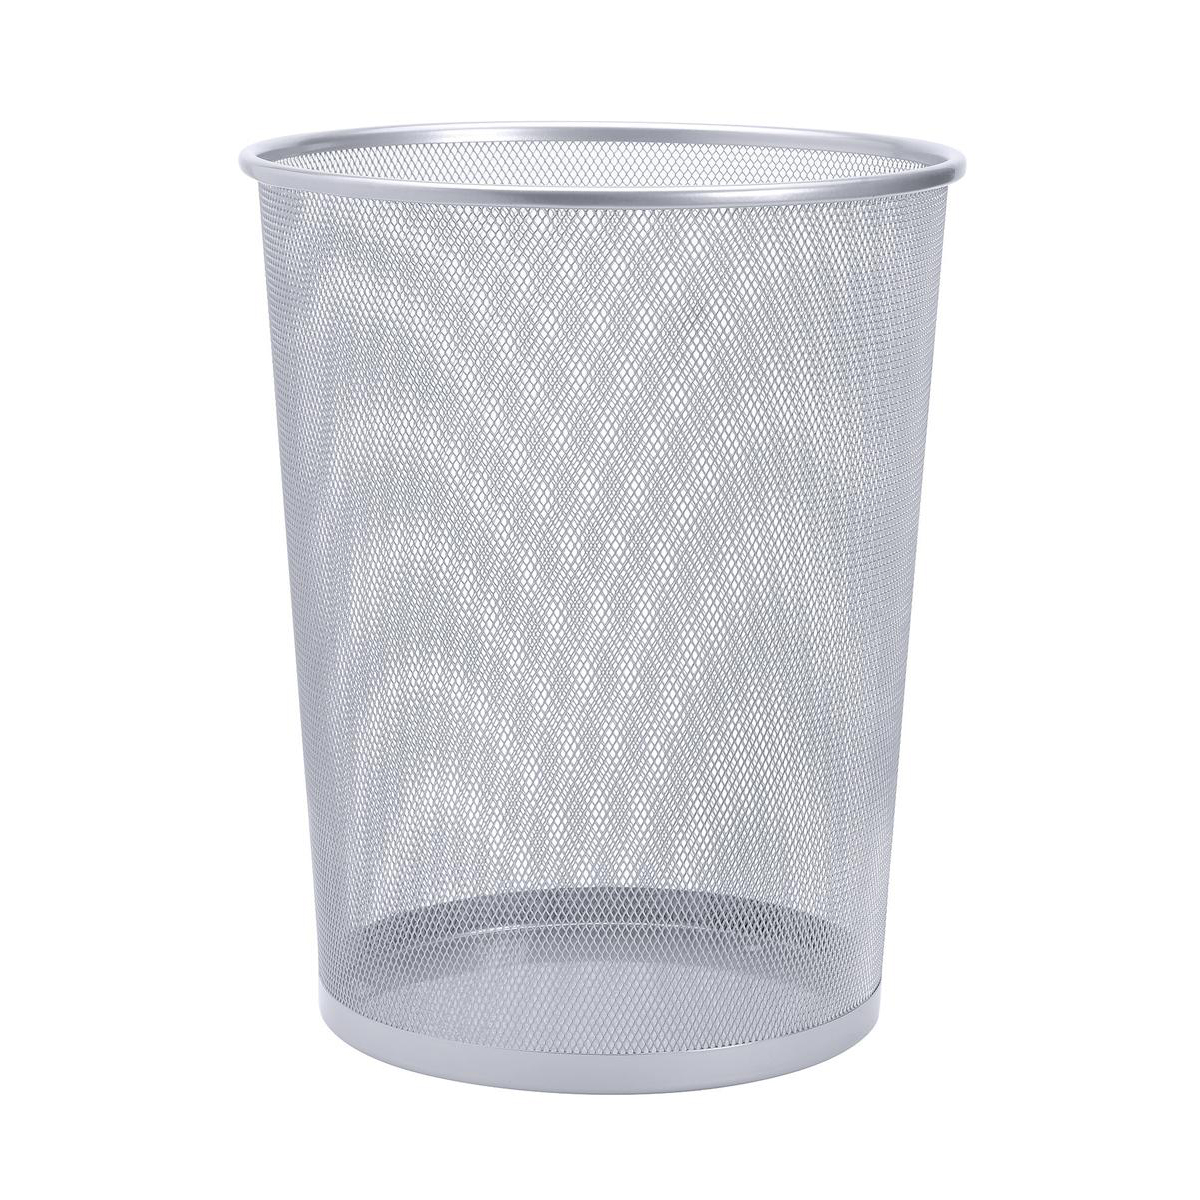 Rubbish Bins 5 Star Office Mesh Waste Bin Lightweight Sturdy Scratch Resistant 15-20 Litres DxH 305x345mm Silver